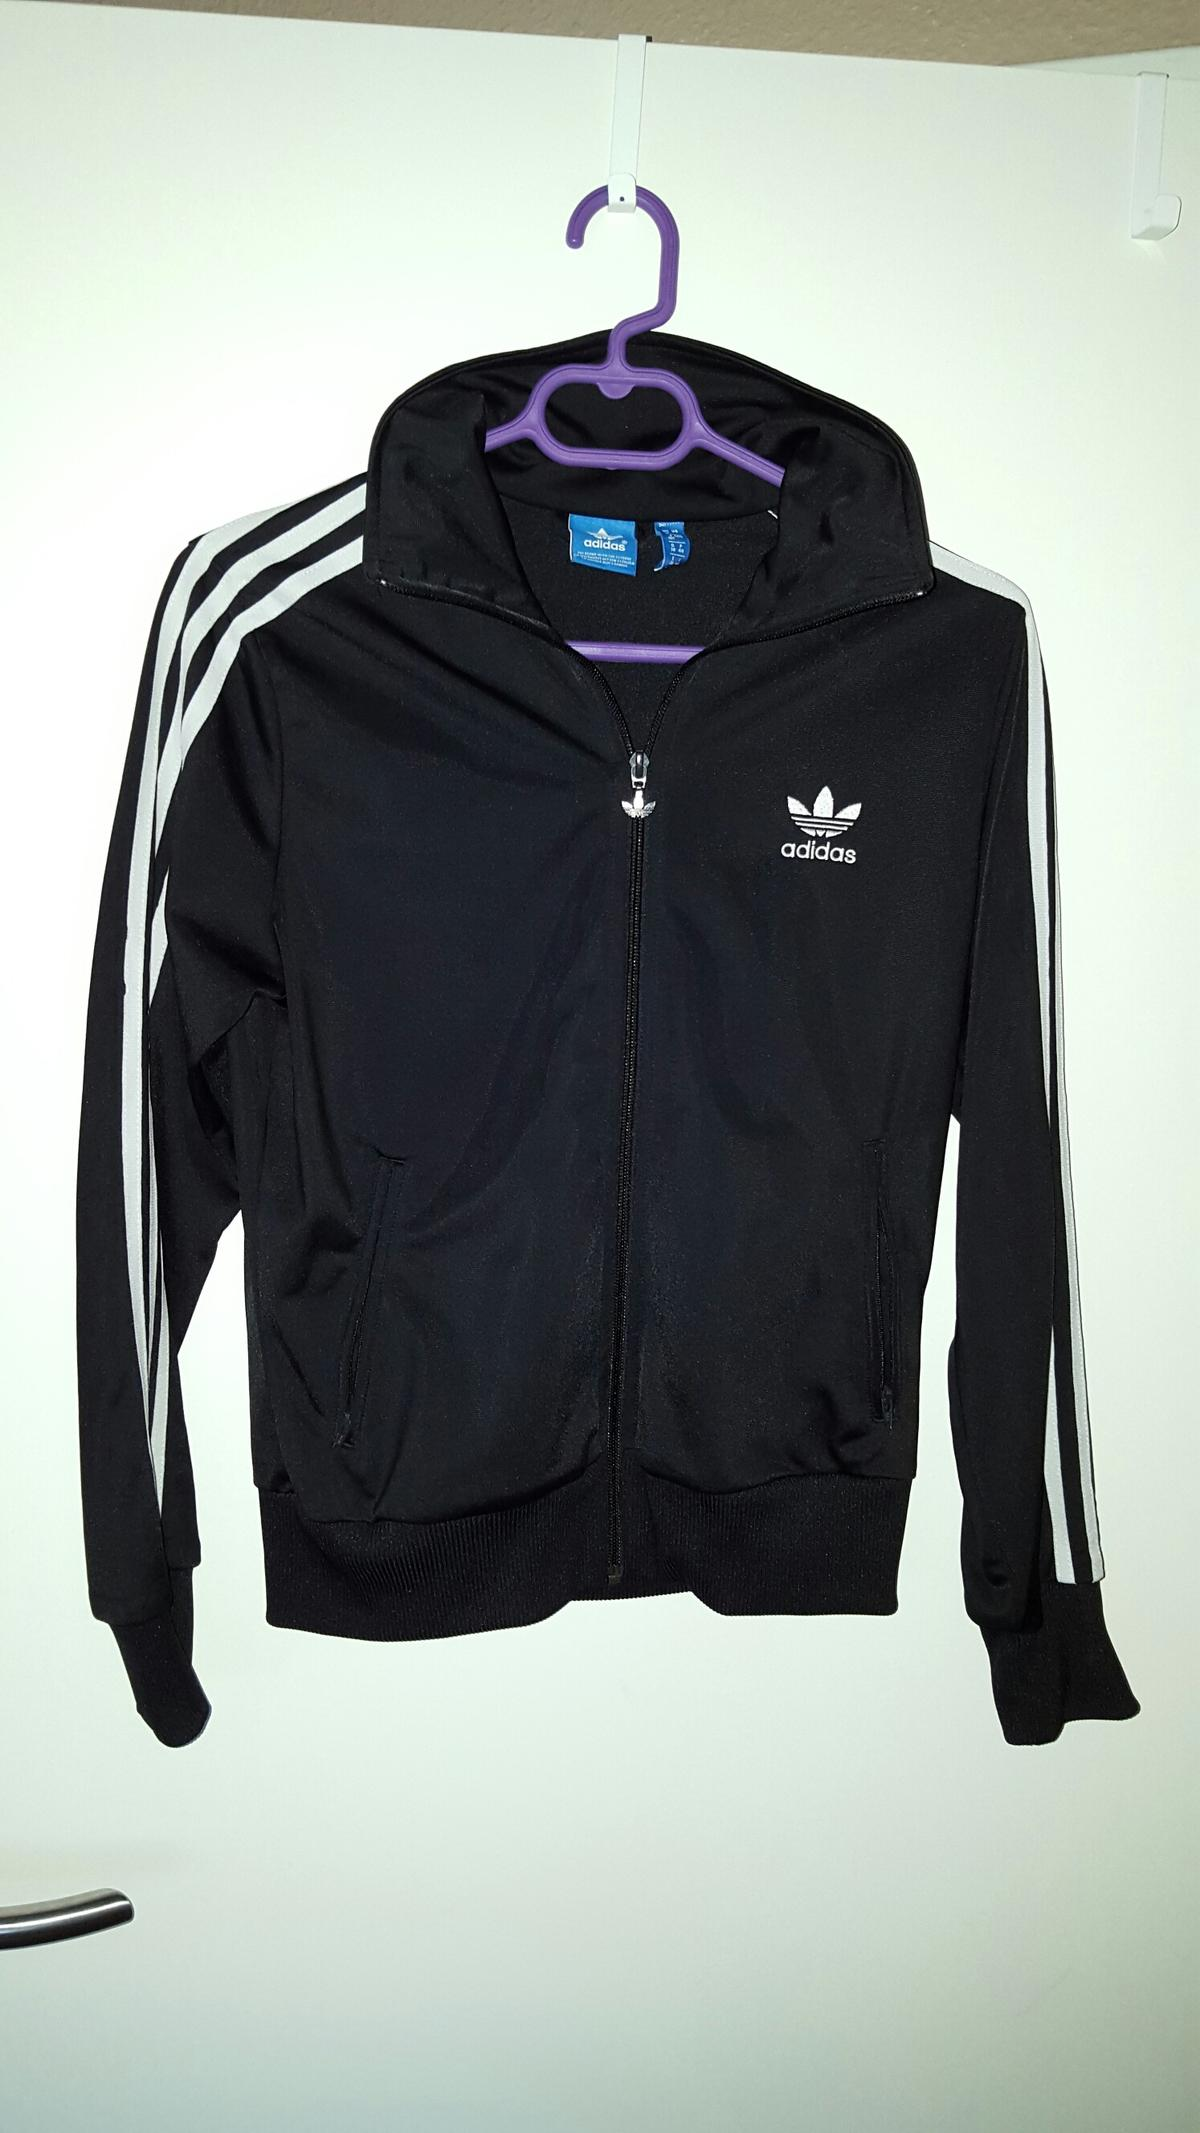 Adidas Trainingsjacke Adidas Firebird Damen Trainingsjacke tsBxQCdhr